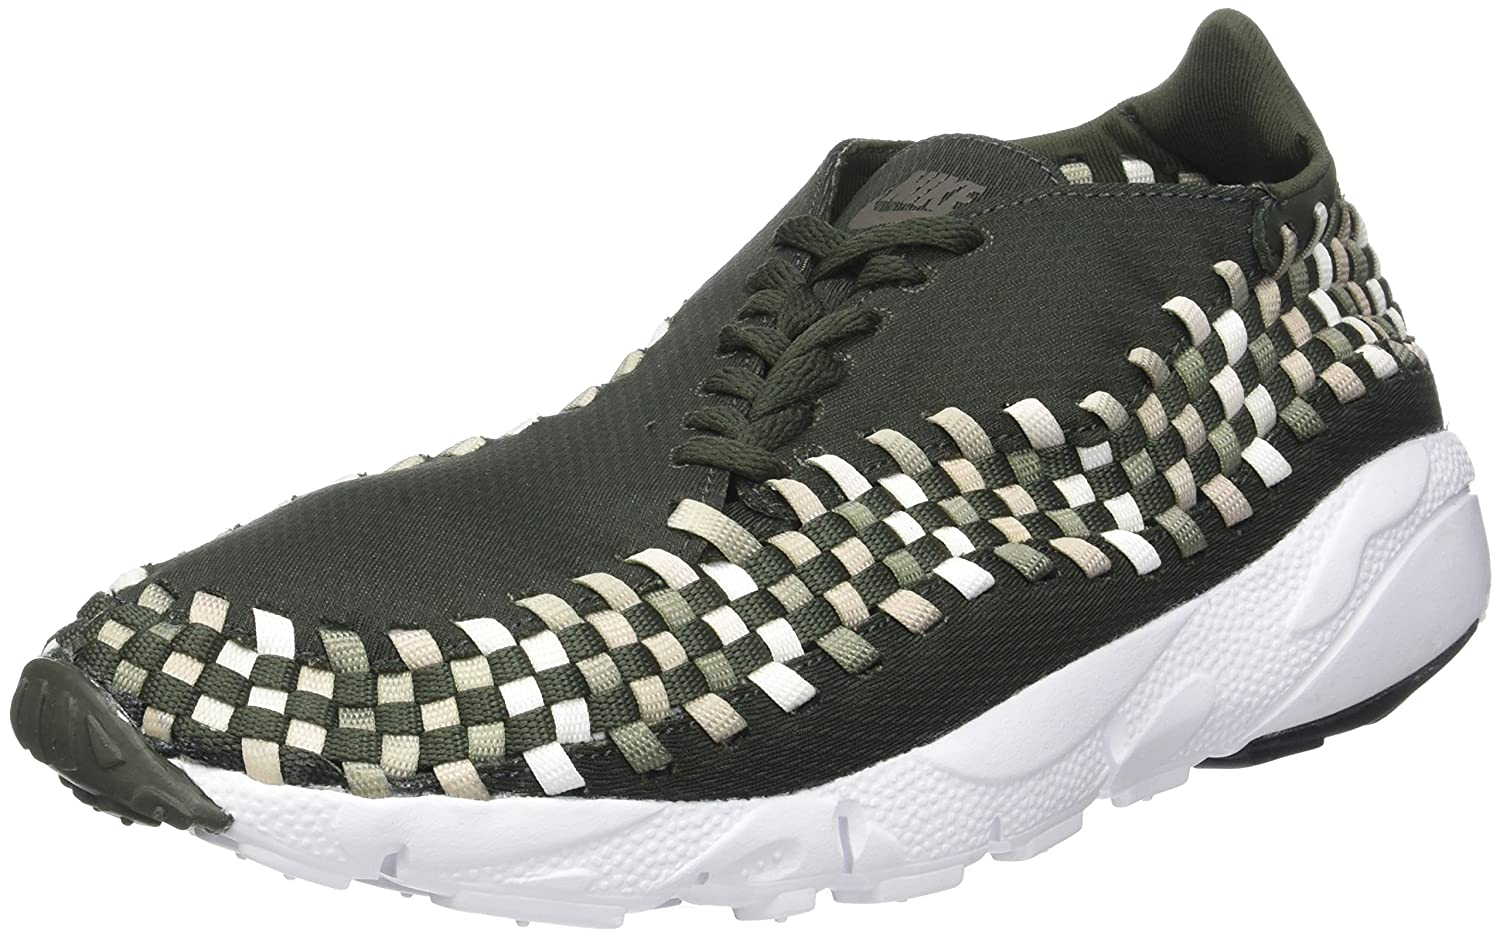 Nike Air Footscape Woven Nm, Herren Gymnastikschuhe, Grün